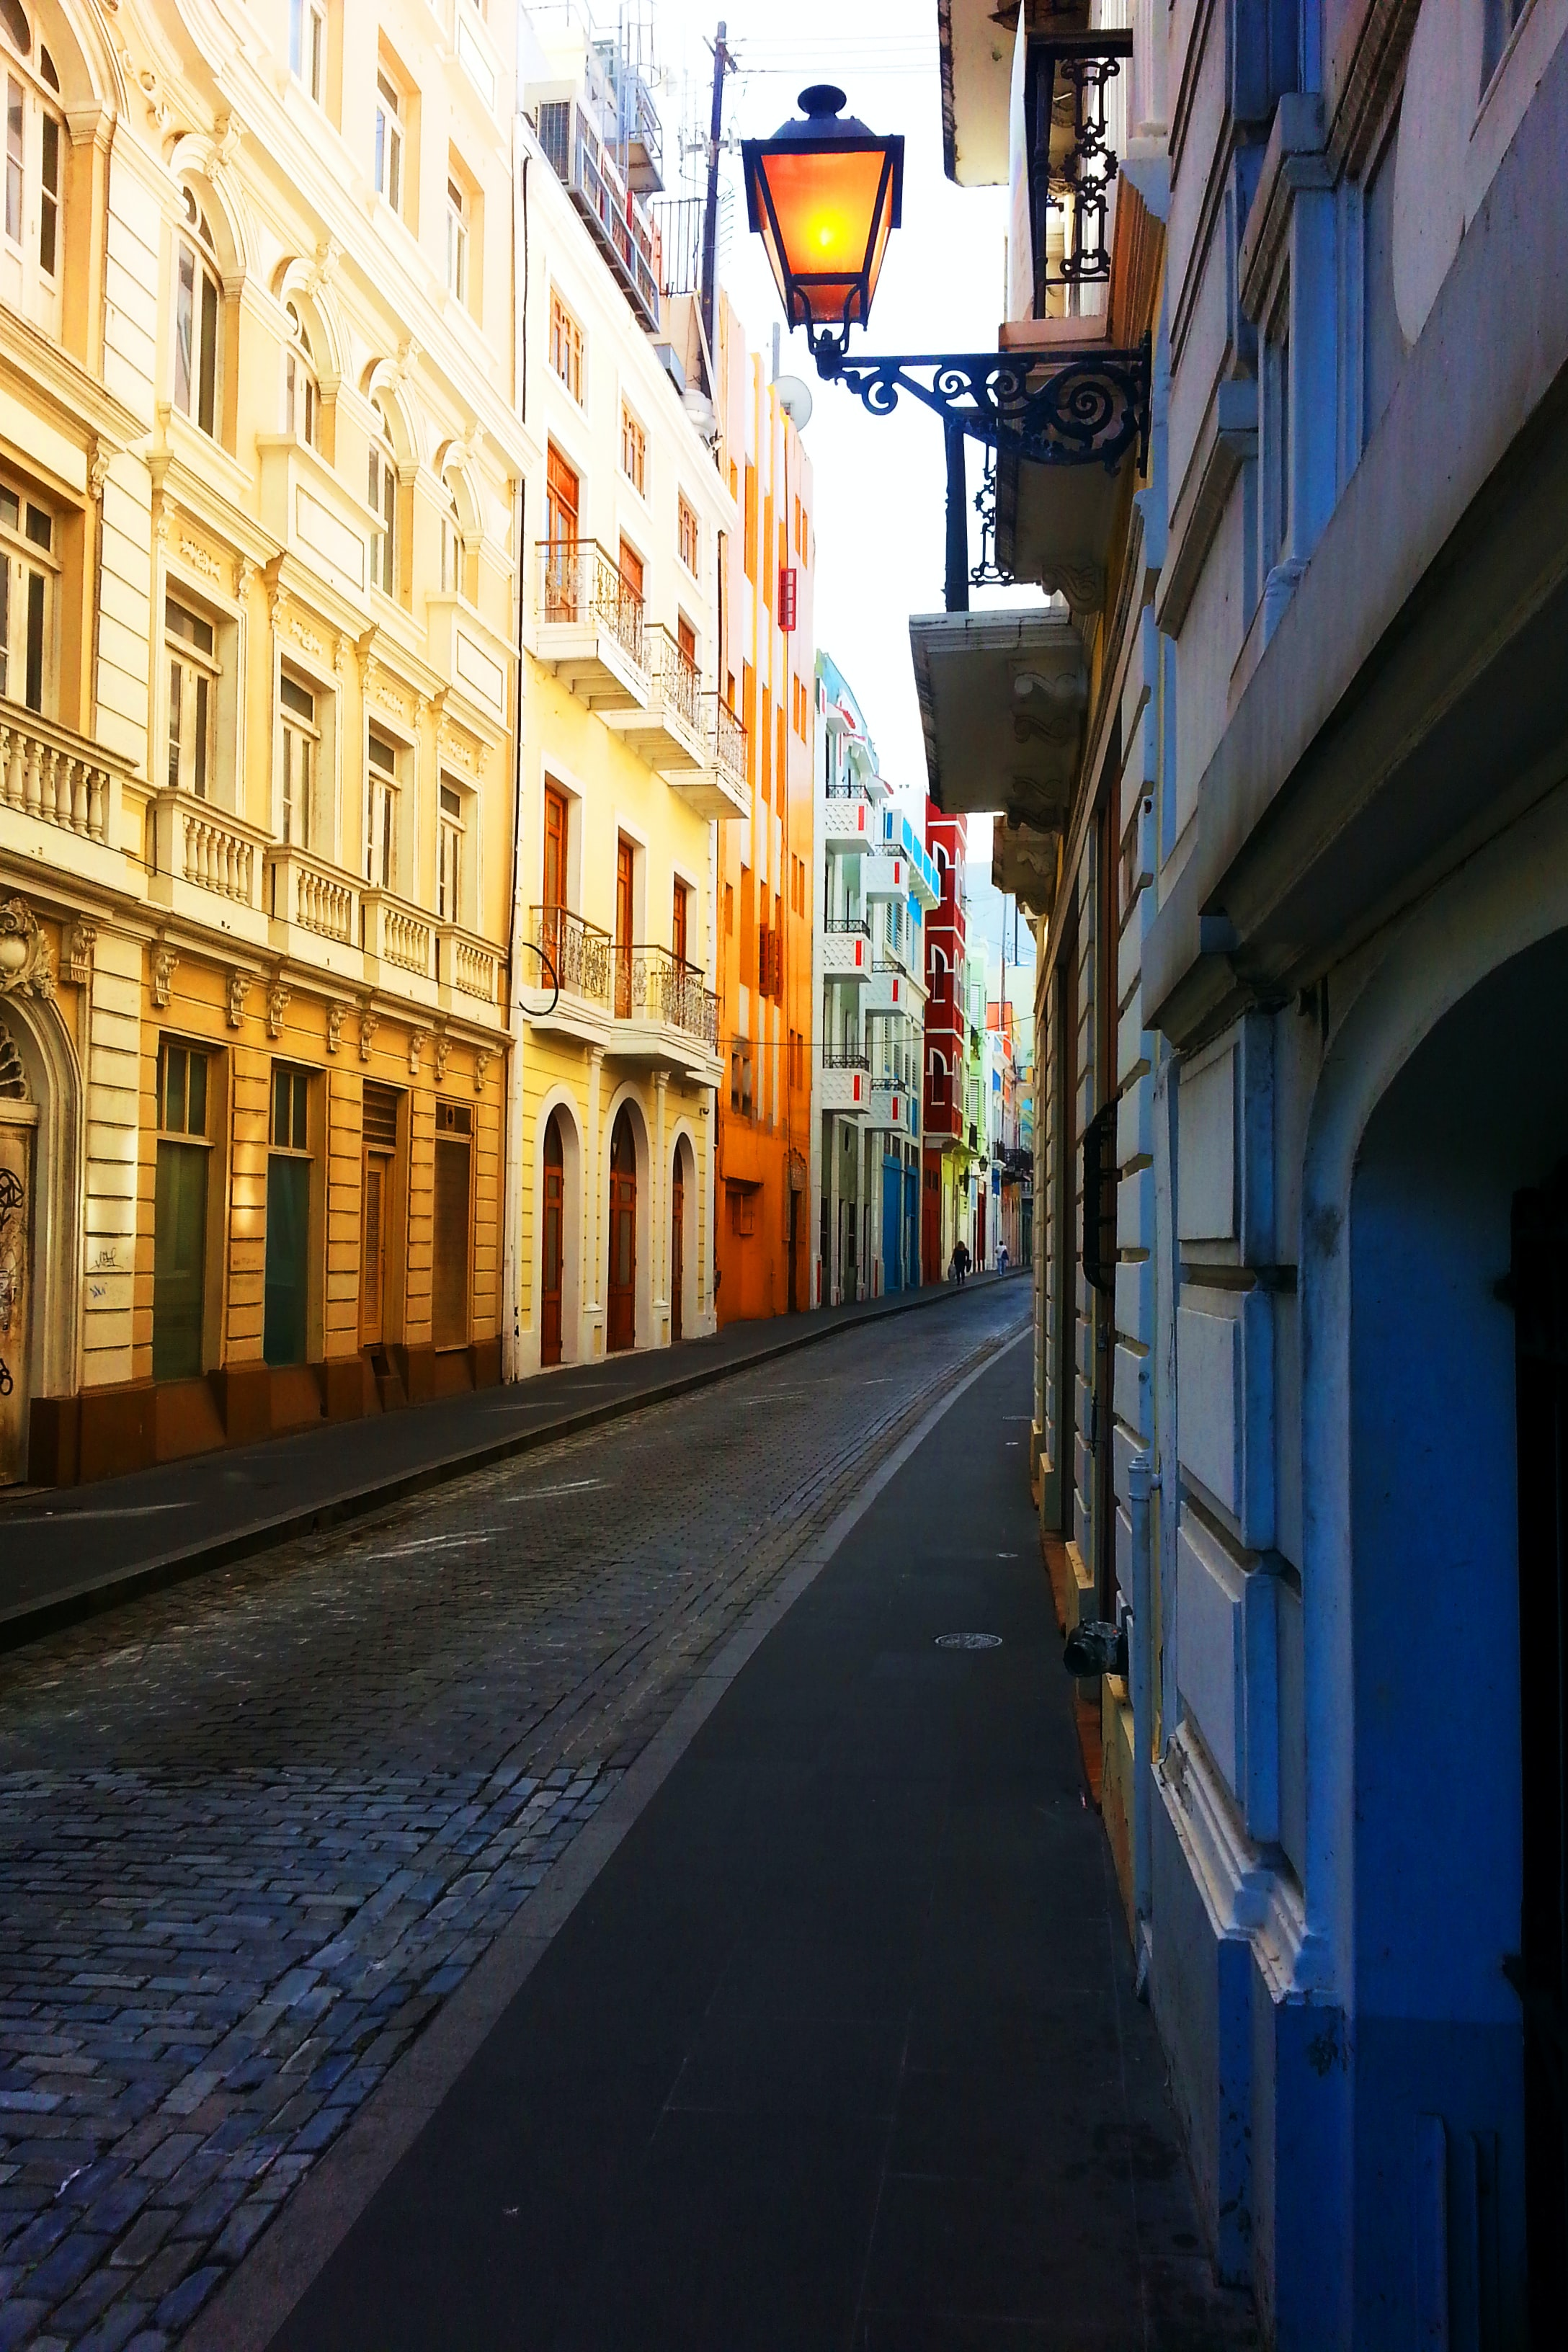 Alleyway with colorful bright buildings flanking the road with a lit lamp protruding from a house